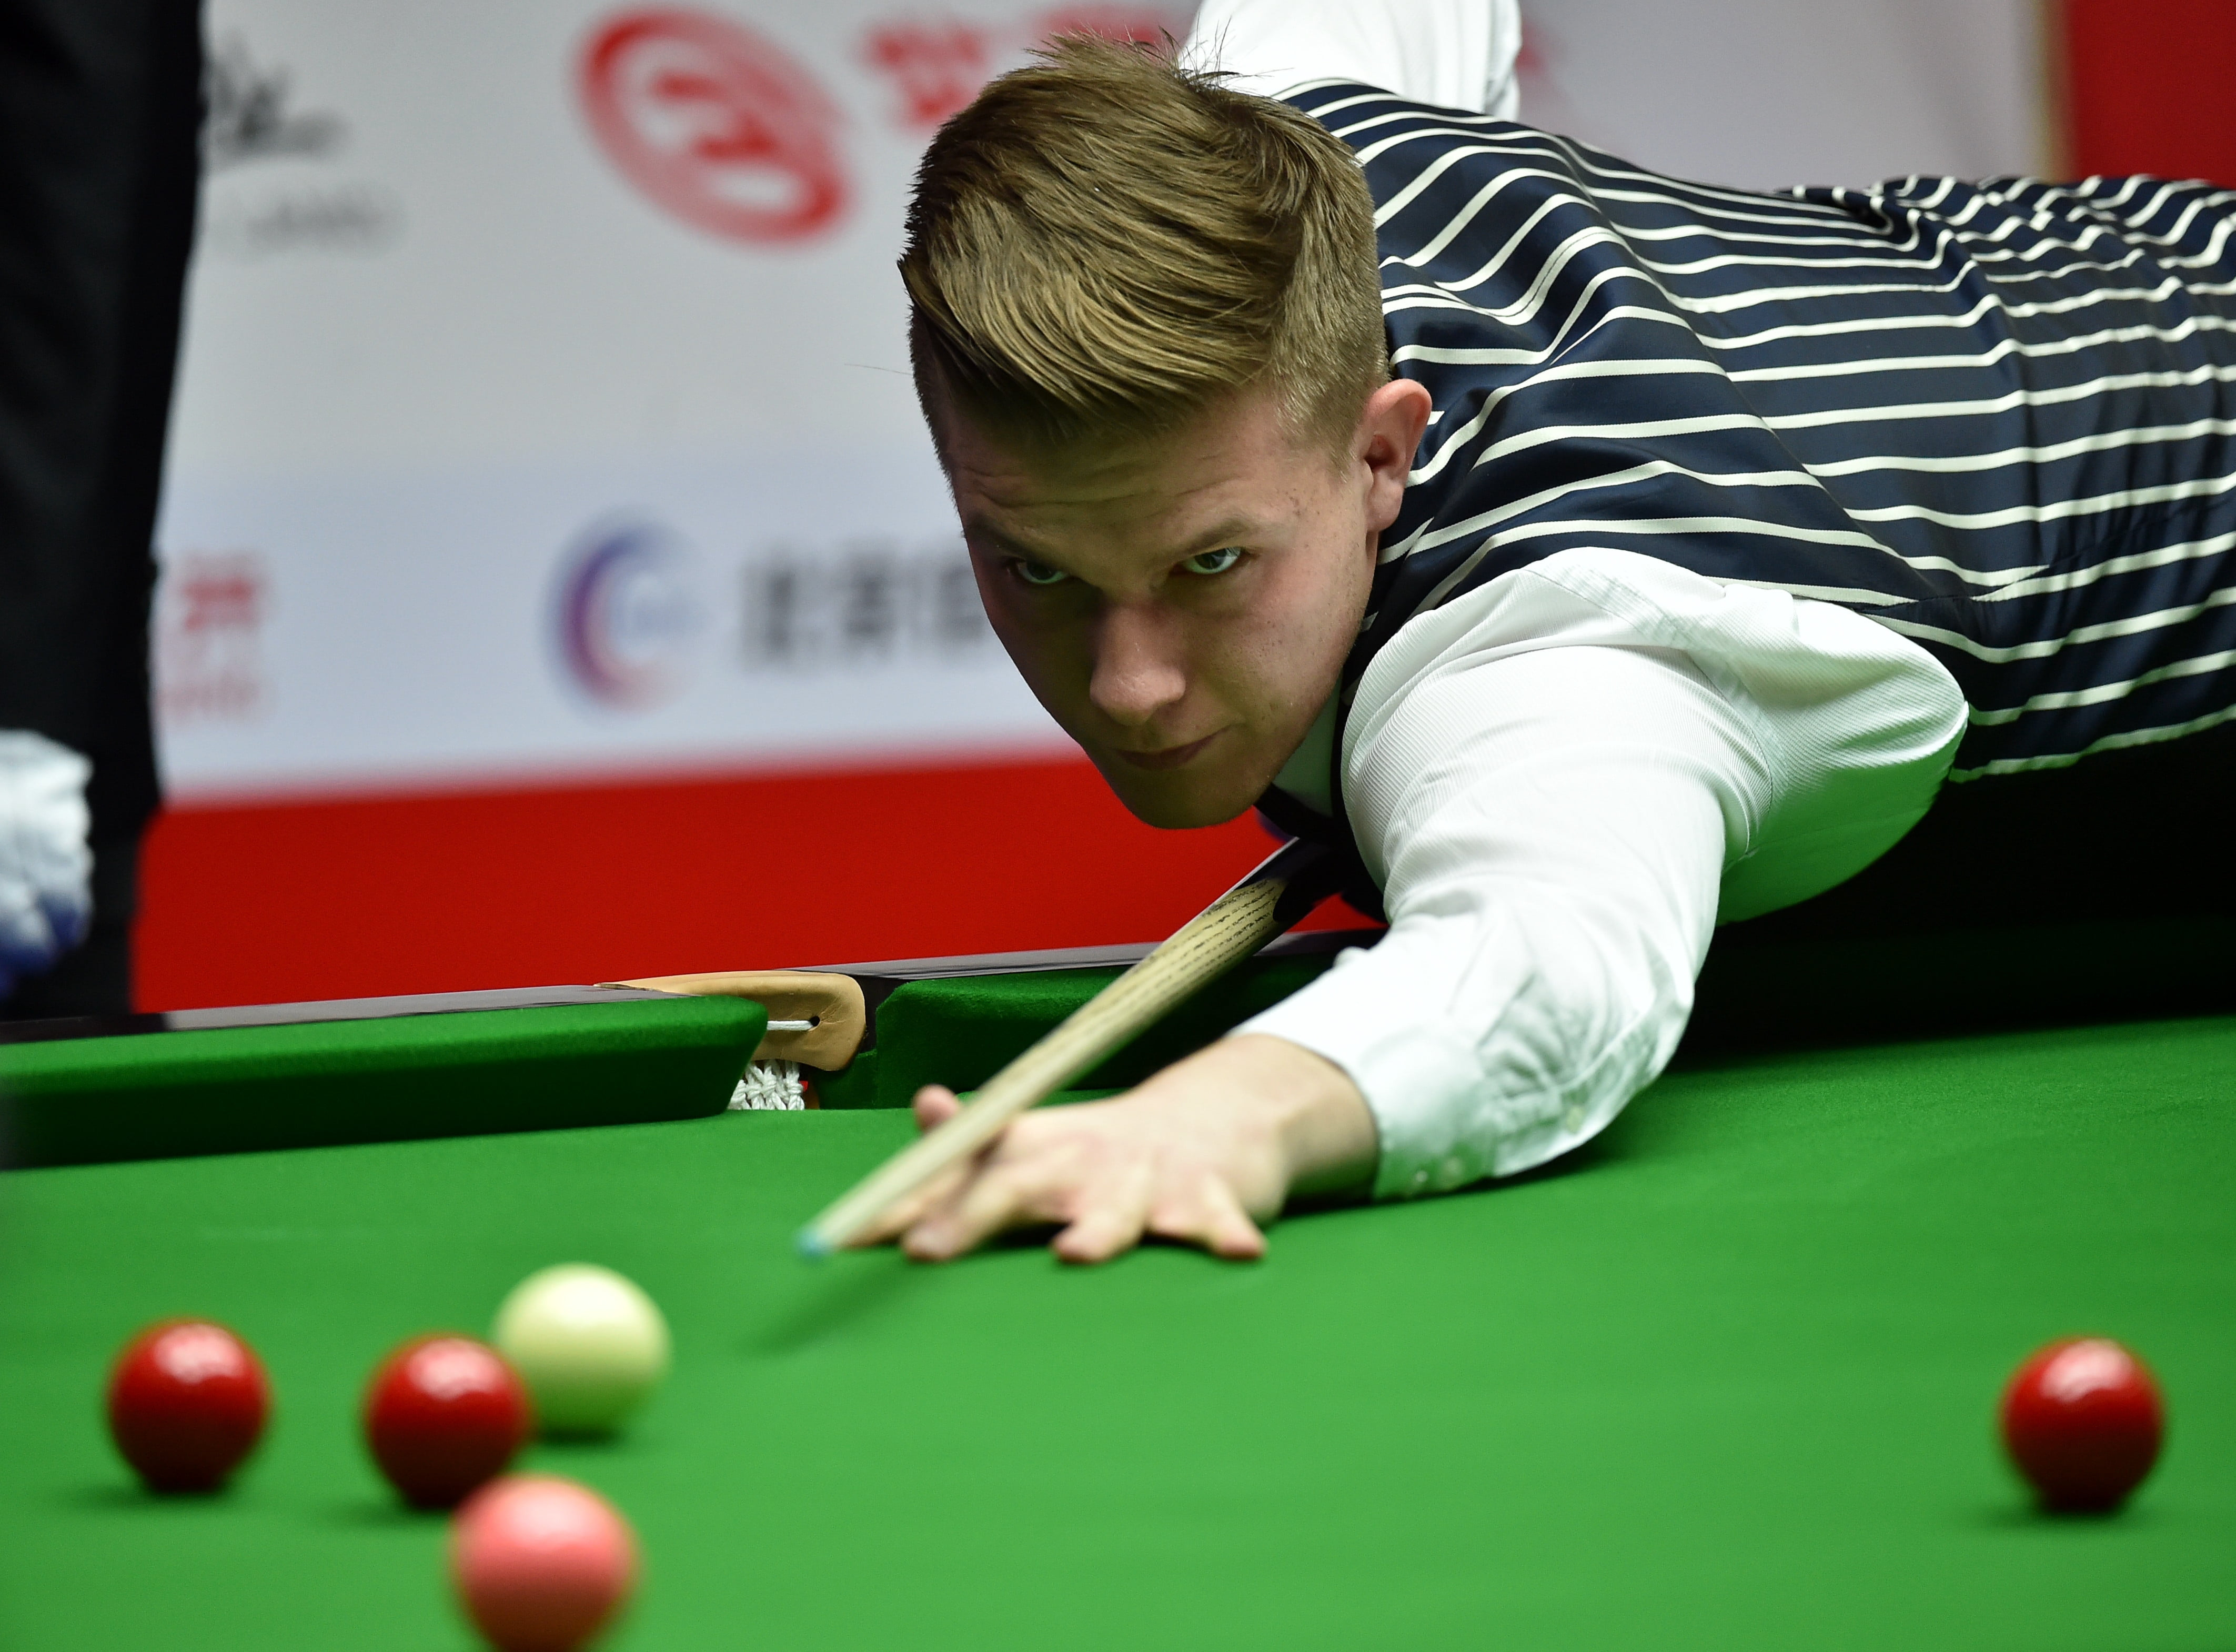 BEIJING, March 27, 2017 Adam Stefanow of Poland competes during the heldover match of 2017 World Snooker China Open Tournament against Mark Selby of England in Beijing, capital of China, March 27, 2017. Adam Stefanow lost by 3-5. (Credit Image: © Zhang Chenlin/Xinhua via ZUMA Wire) FOT. ZUMA/NEWSPIX.PL POLAND ONLY !!! --- Newspix.pl *** Local Caption *** www.newspix.pl mail us: info@newspix.pl call us: 0048 022 23 22 222 --- Polish Picture Agency by Ringier Axel Springer Poland